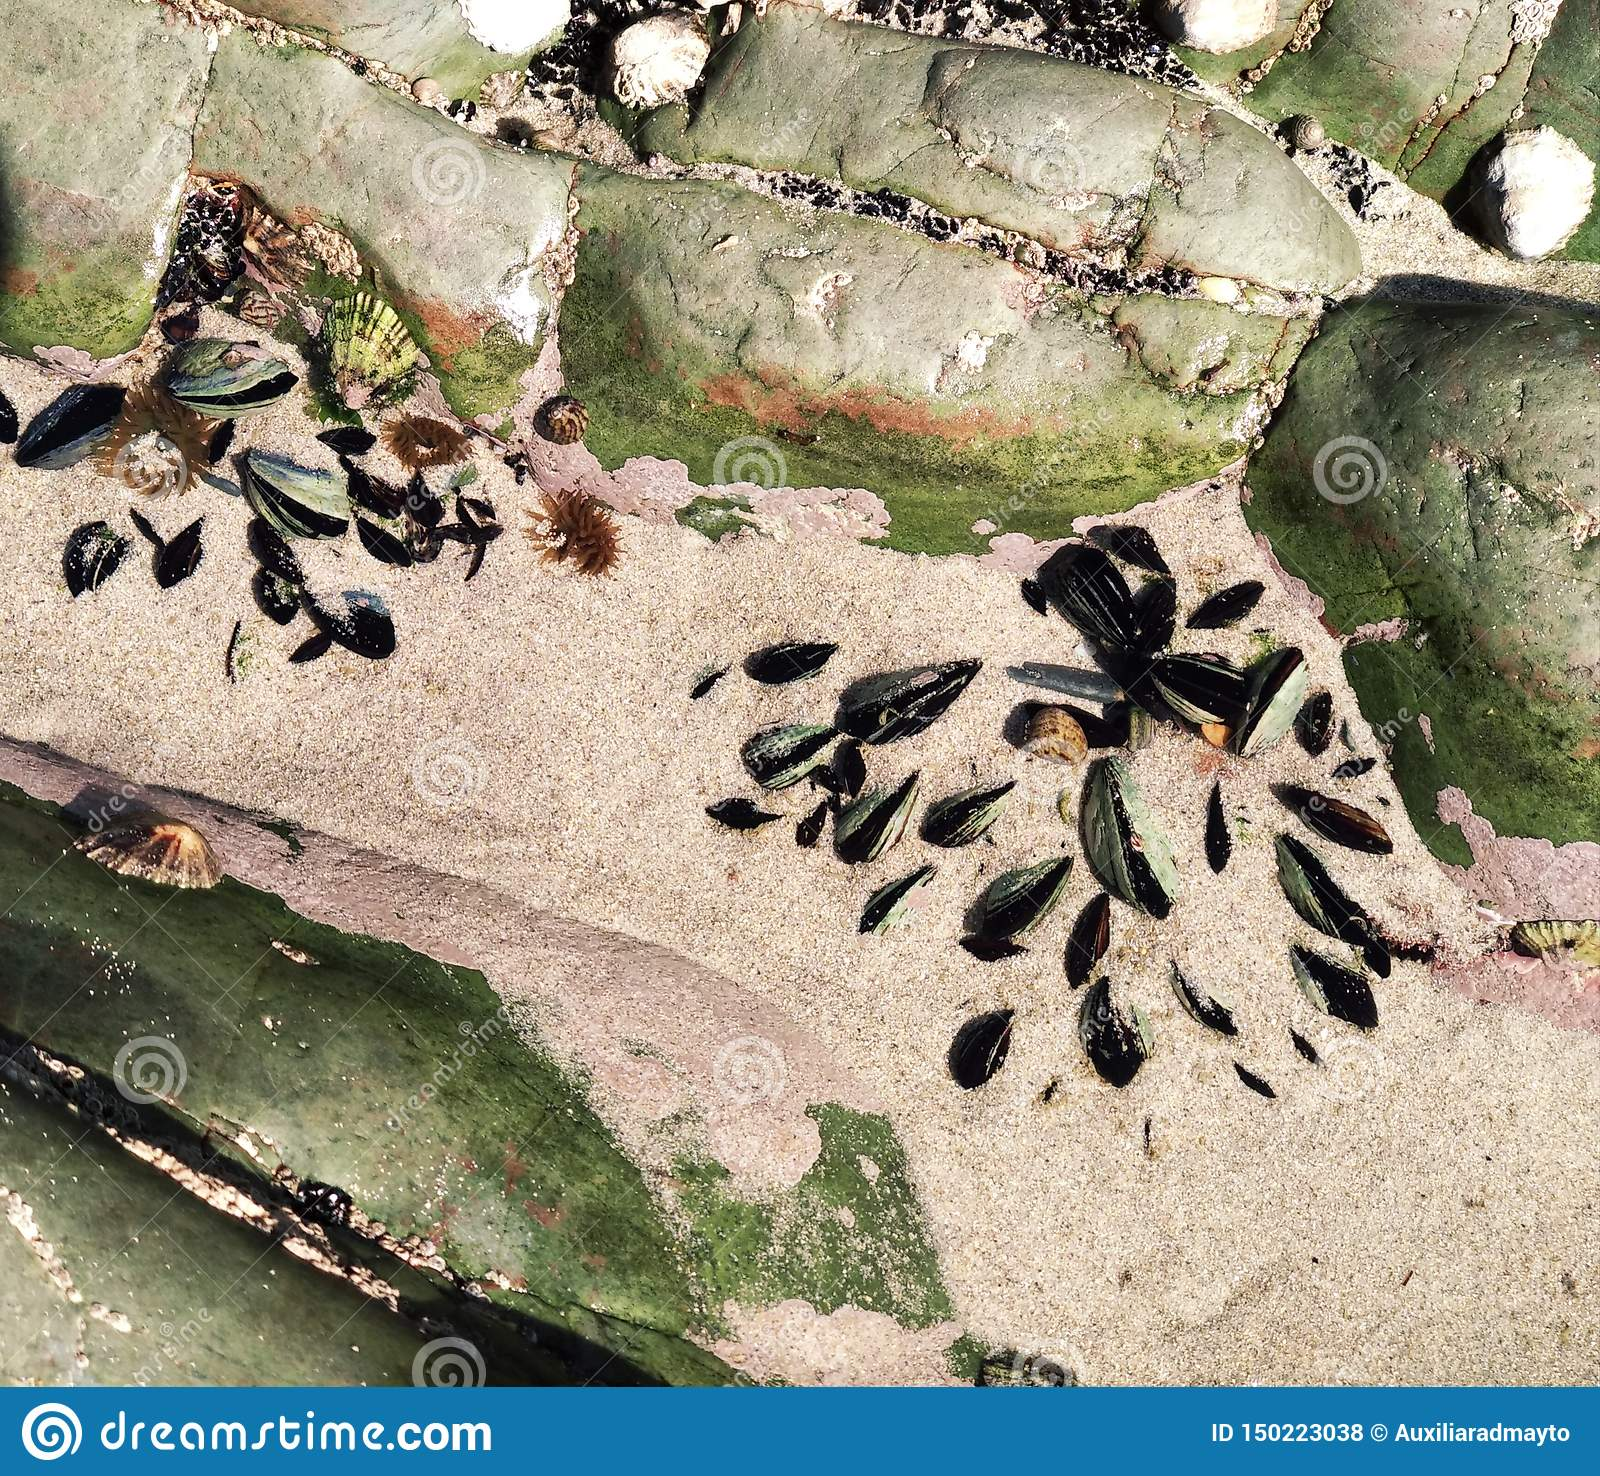 Mussels growing on the rocks at the seashore